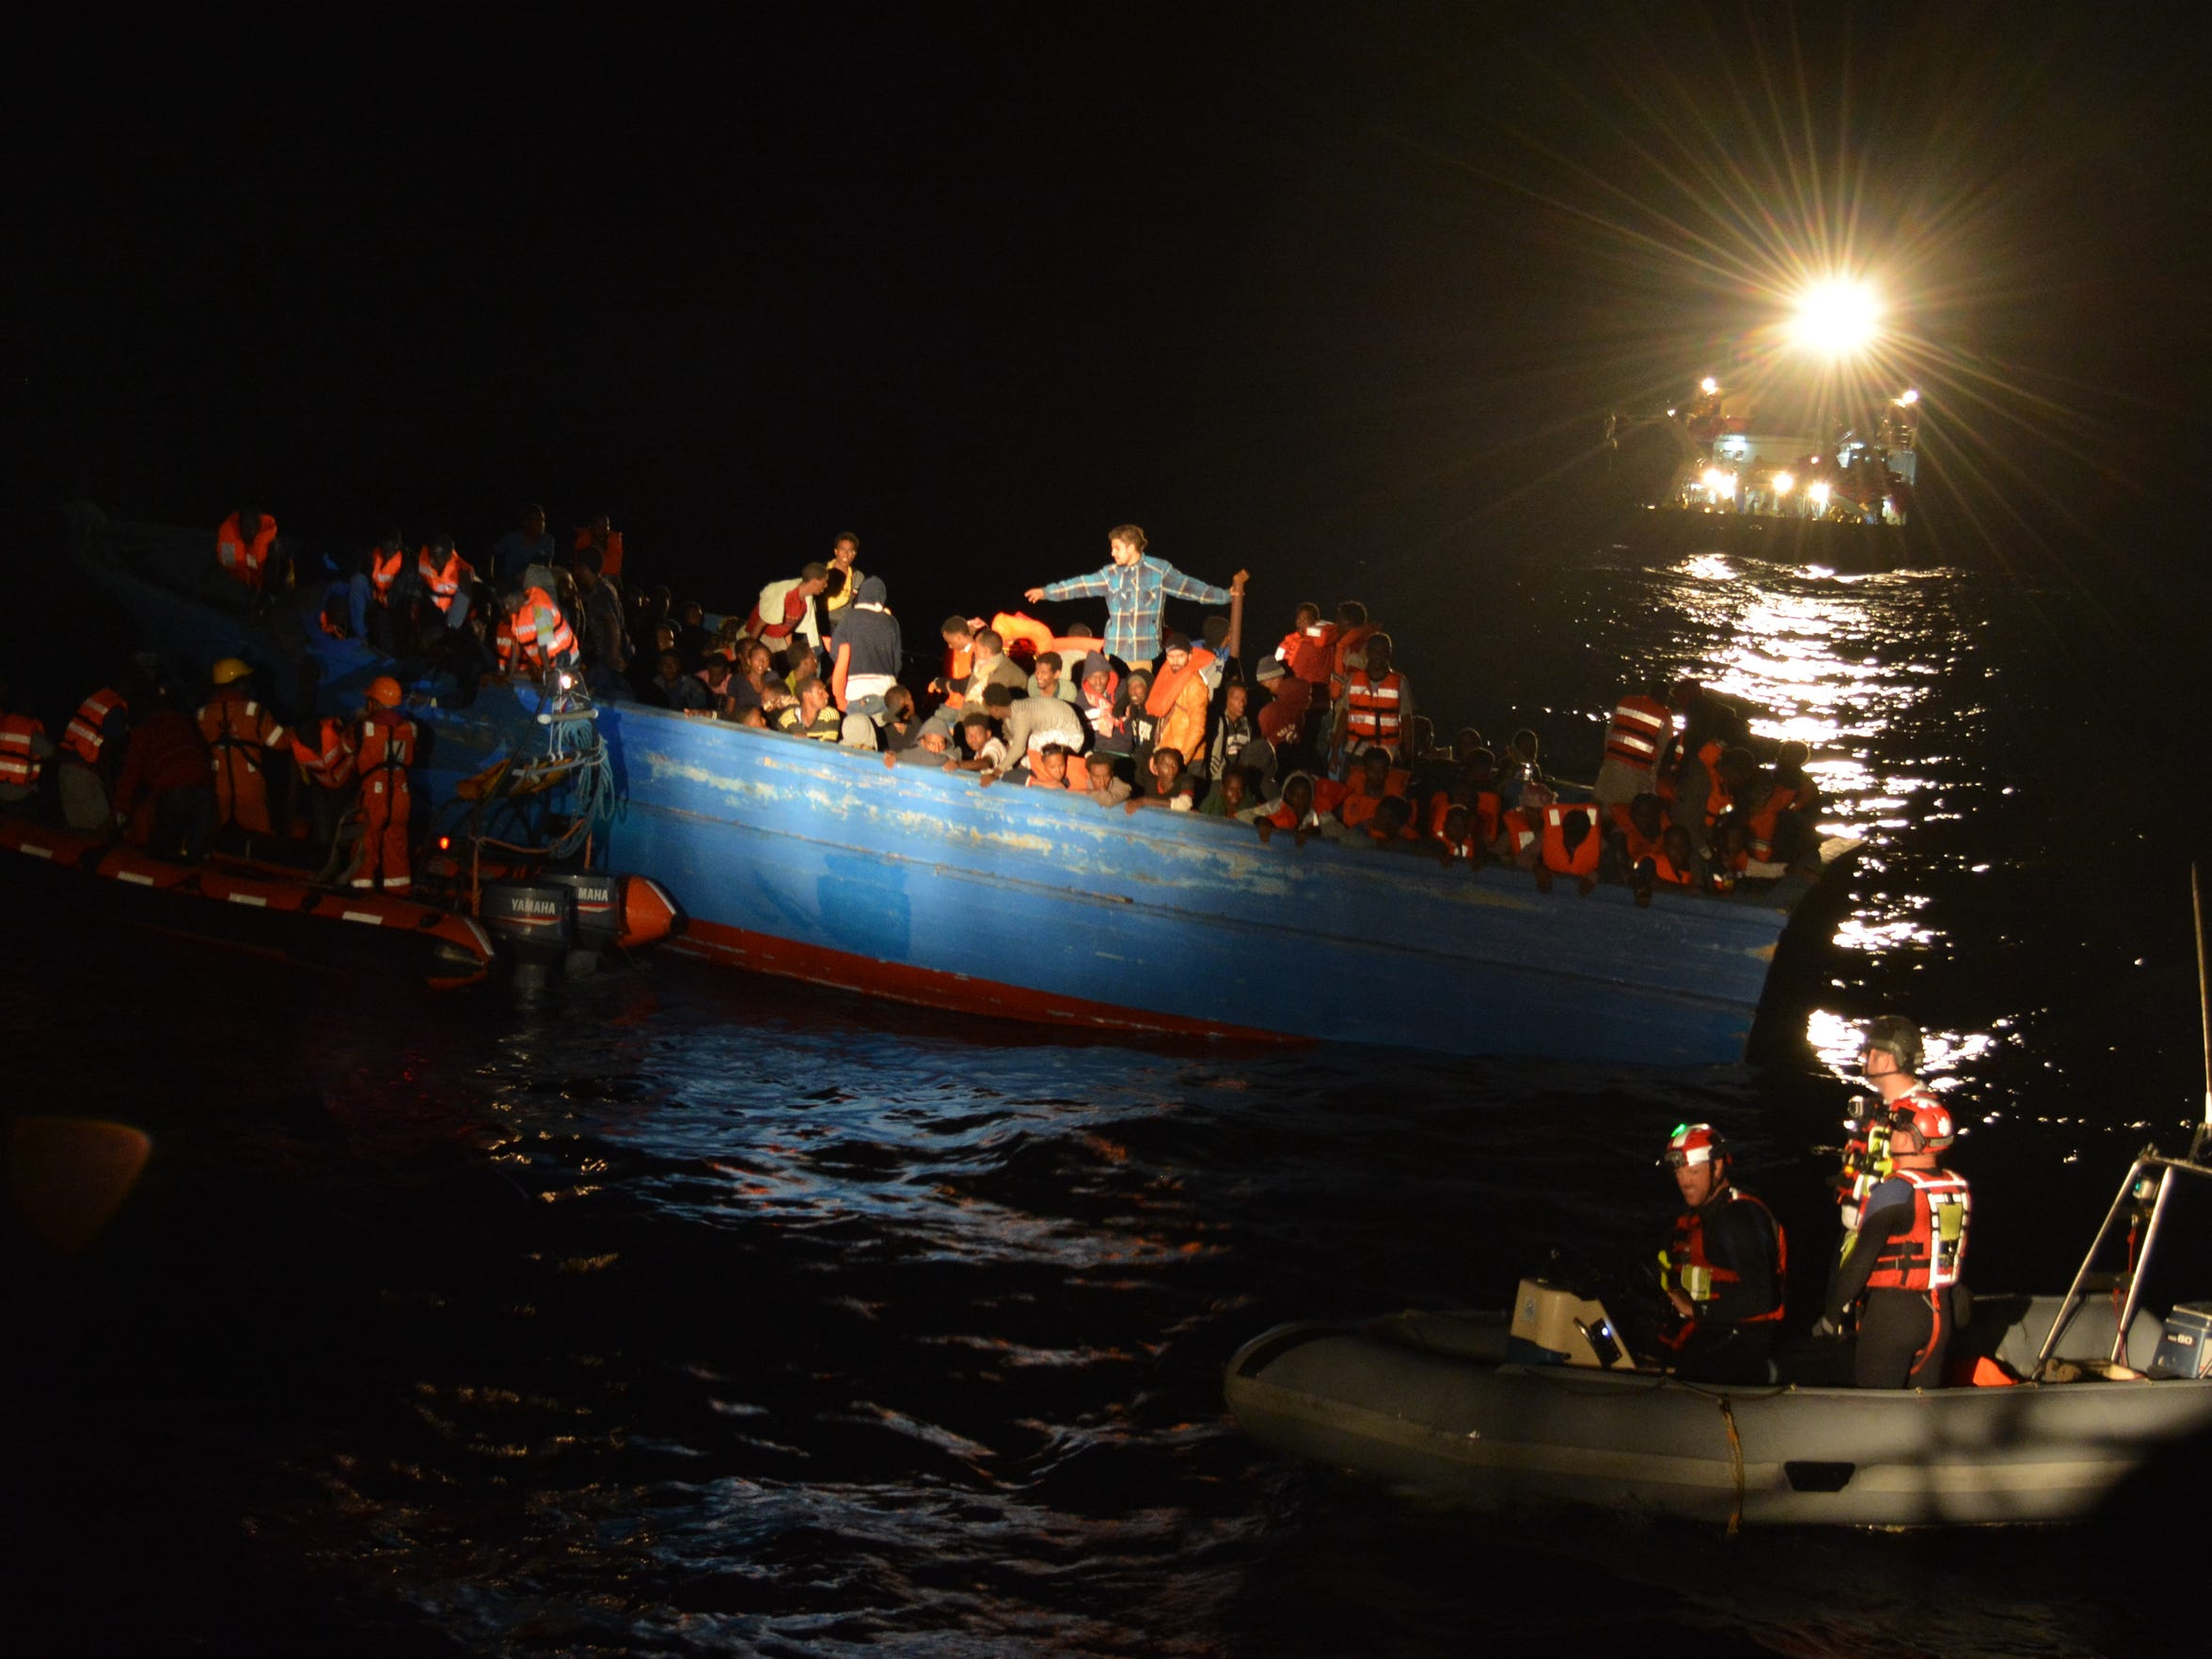 Rescuers work to evacuate 430 refugees who crammed